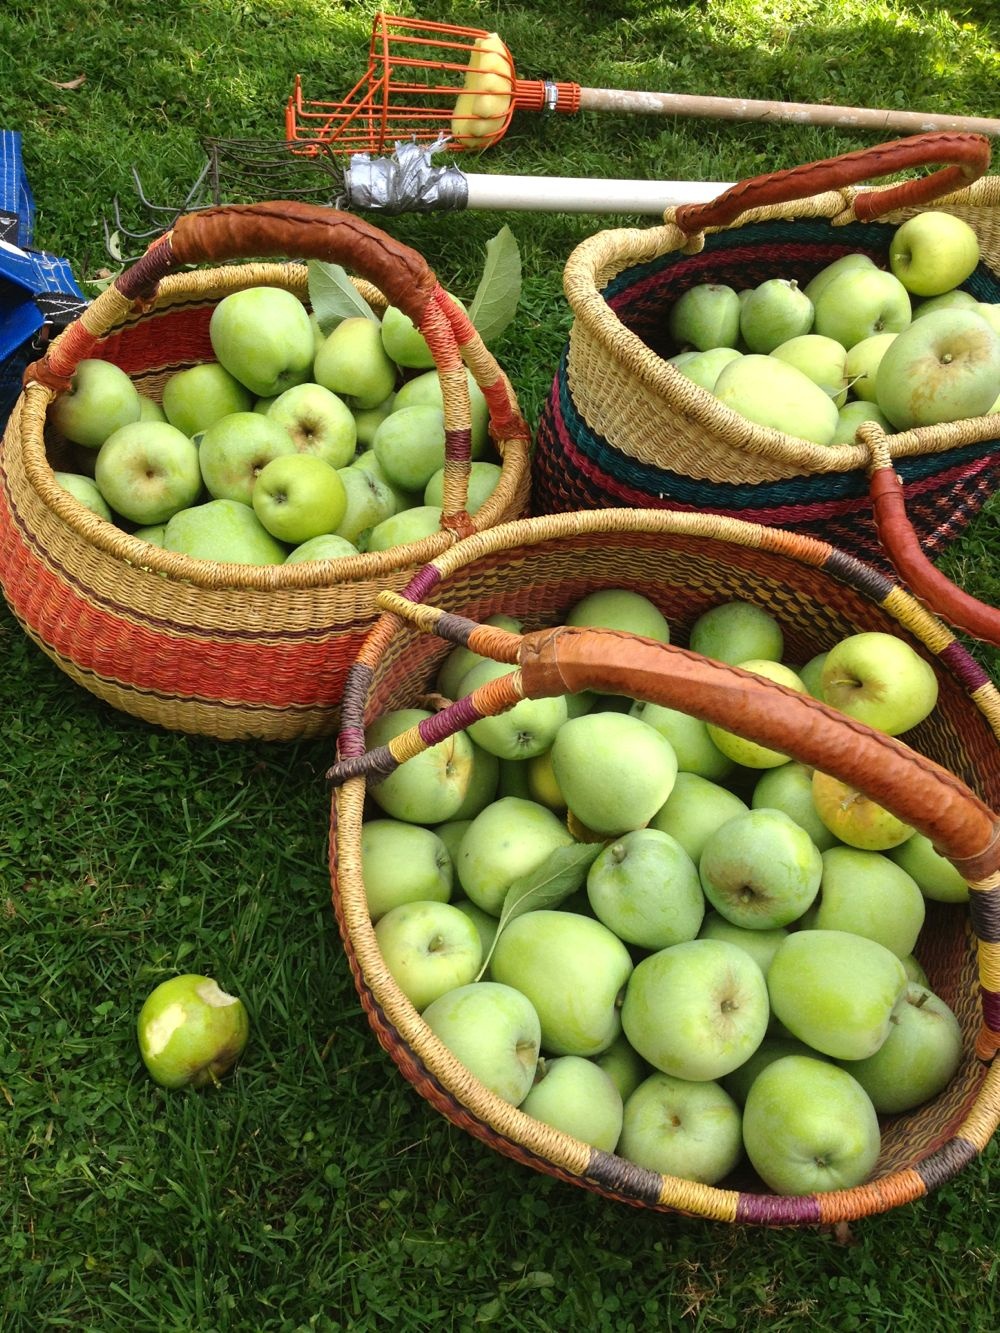 baskets of apples